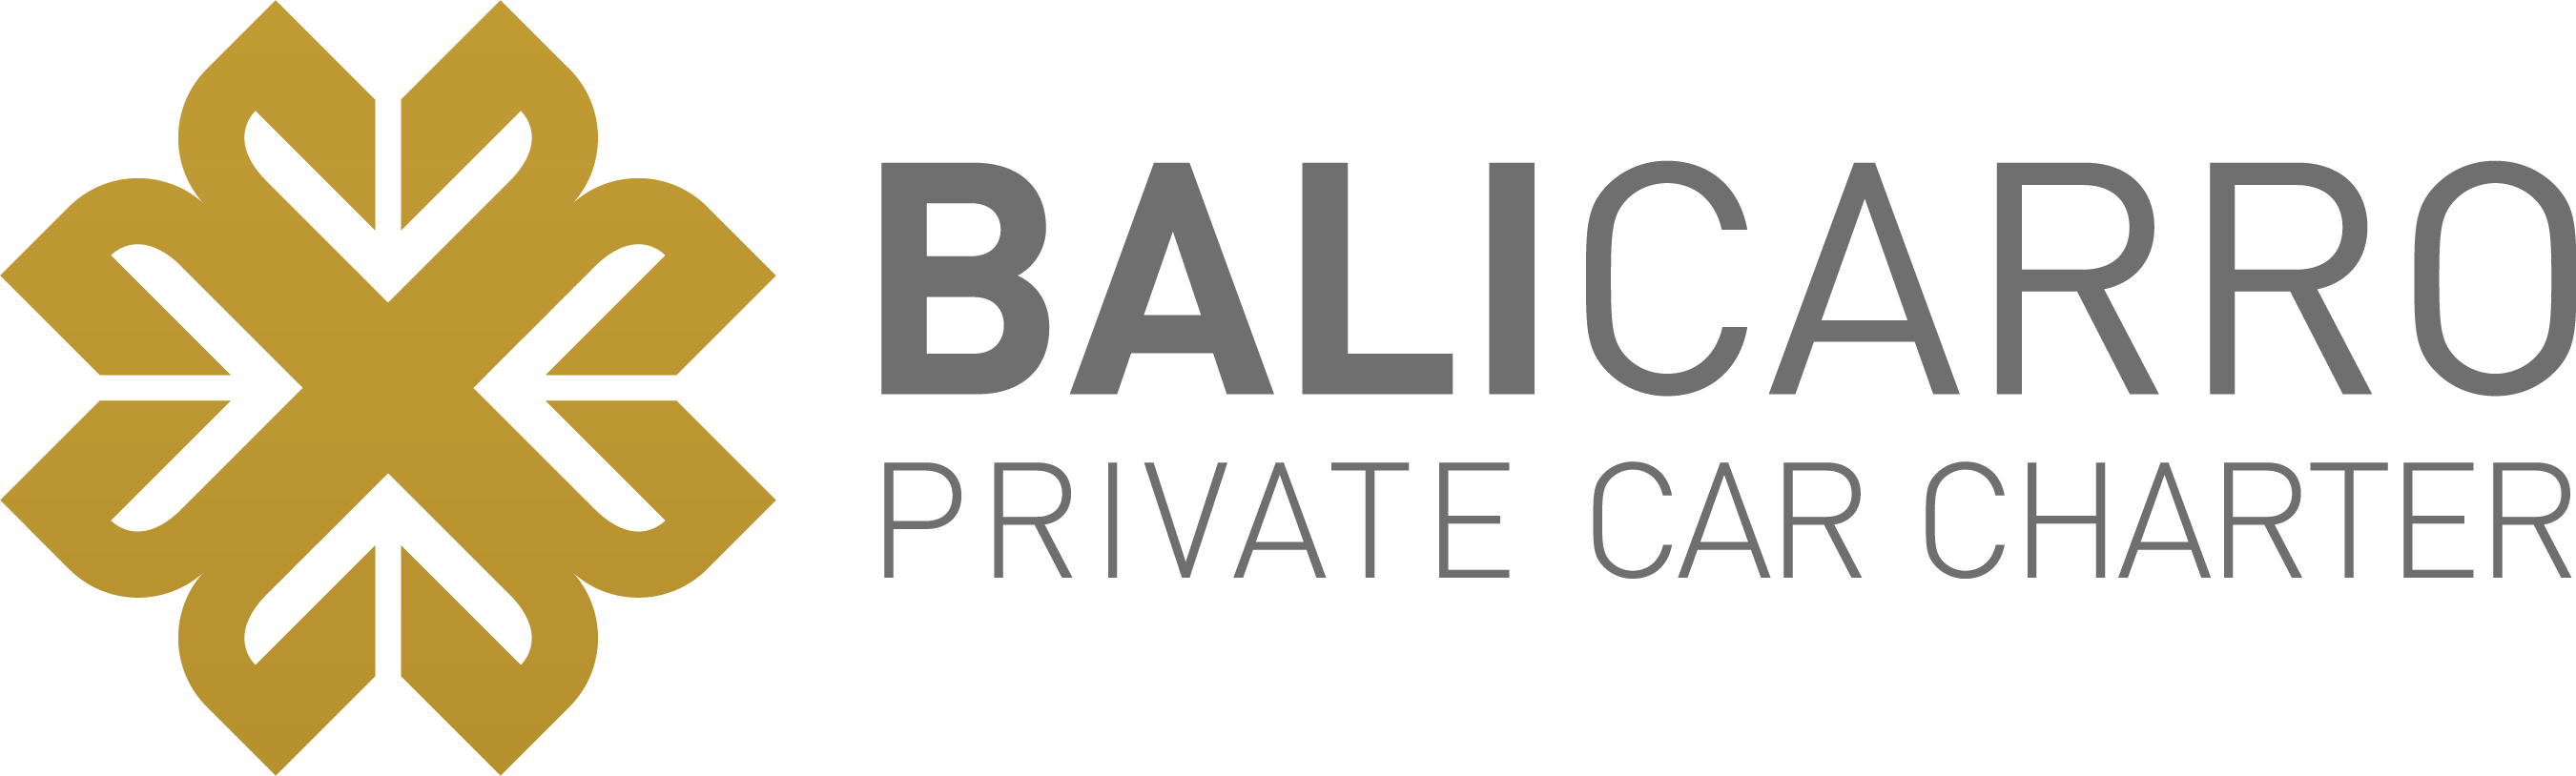 BALICARRO-private car charter in BALI